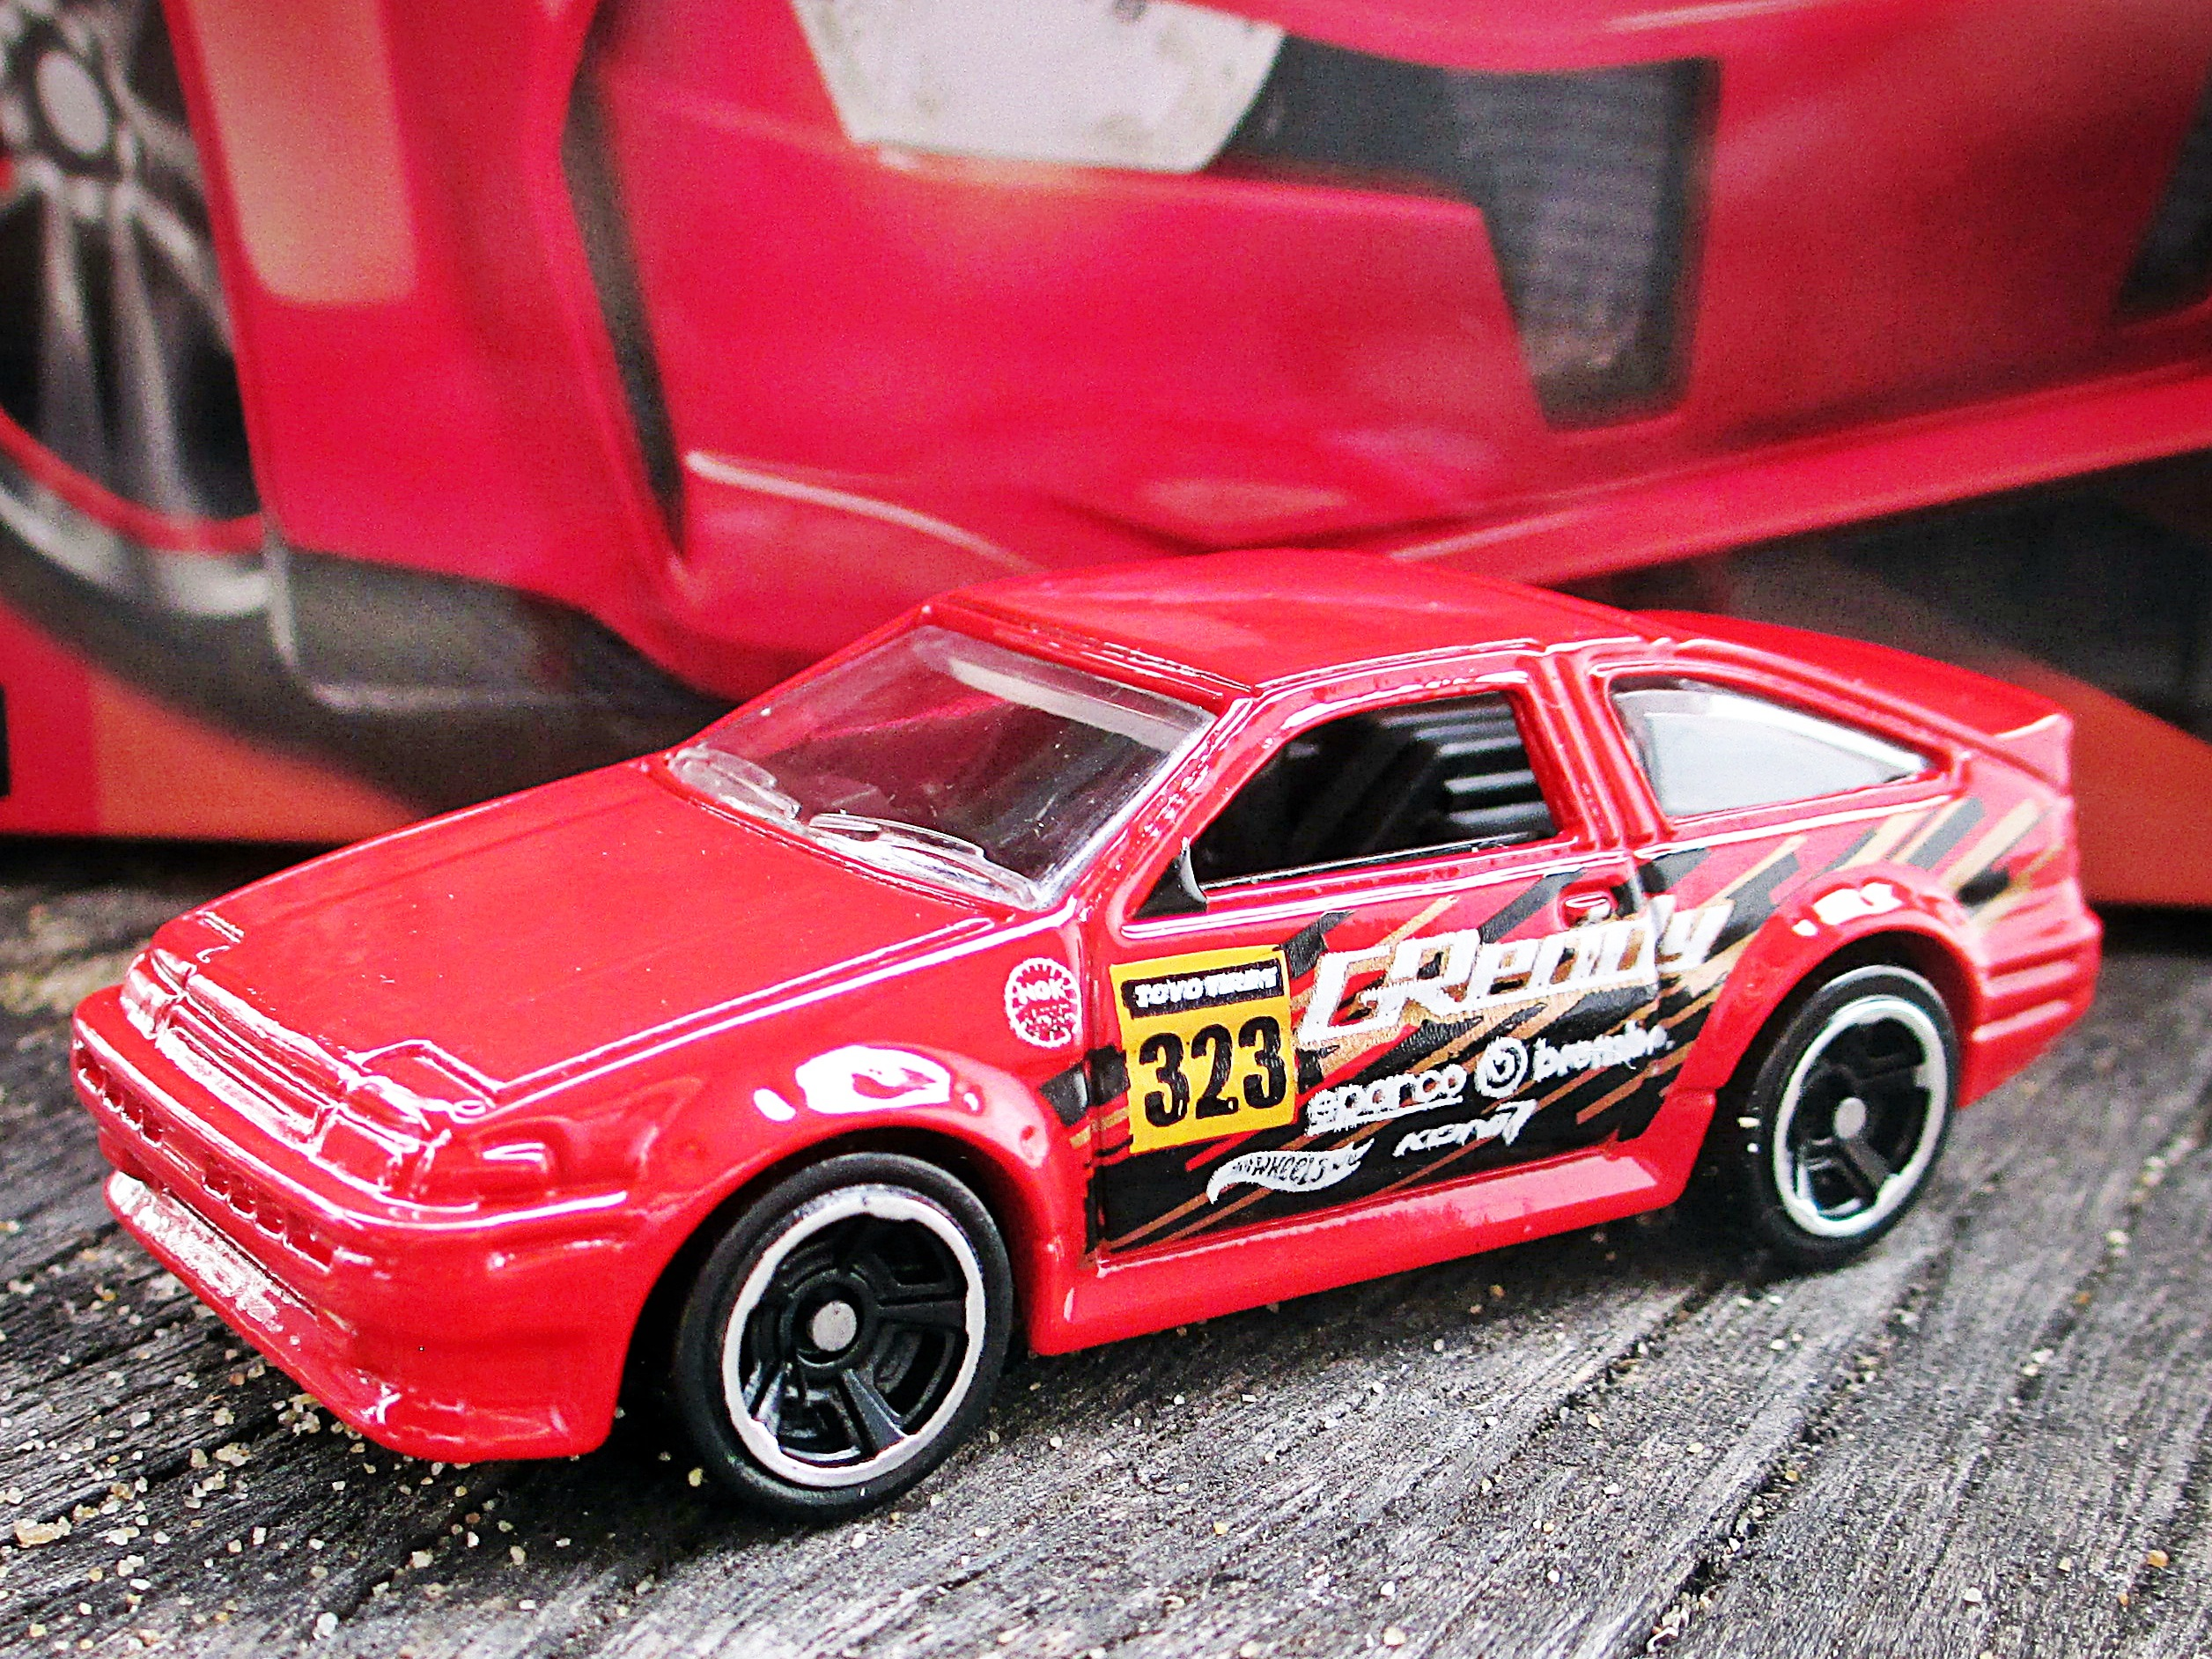 Toyota Ae 86 Corolla Hot Wheels Wiki Fandom Powered By Wikia Hotwheels Red Base Codes G42 G44